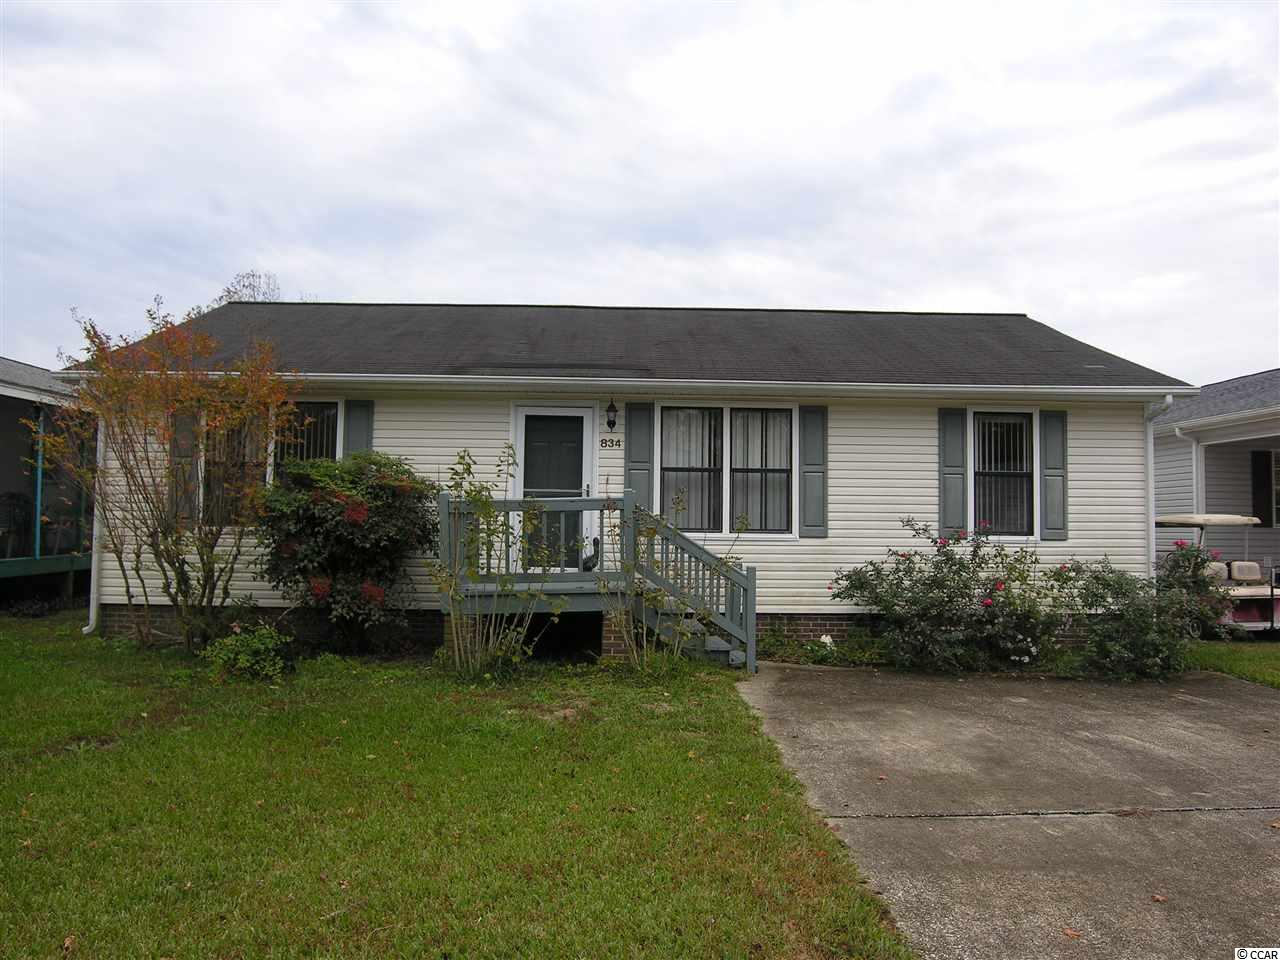 Great opportunity to own a nice 3 bedroom, 2 bath home in the desirable Salters Cove Community of Garden City Beach! Never rented, used as family vacation home! Terrific location, Salters Cove is close to shopping including Inlet Square Mall, churches, only 1/2 mile to the Walmart Super Center, all the attractions of Murrells Inlet, Waccamaw Hospital, The Pier at Garden City, Brookgreen Gardens, Indian Wells Golf course, and walking distance from the beautiful beaches of Garden City! Great amenities include community pool, recently resurfaced lighted tennis courts, children playground and a complete club house with full kitchen. Low HOA fees too! Why rent when you can own your very own place at the beach!